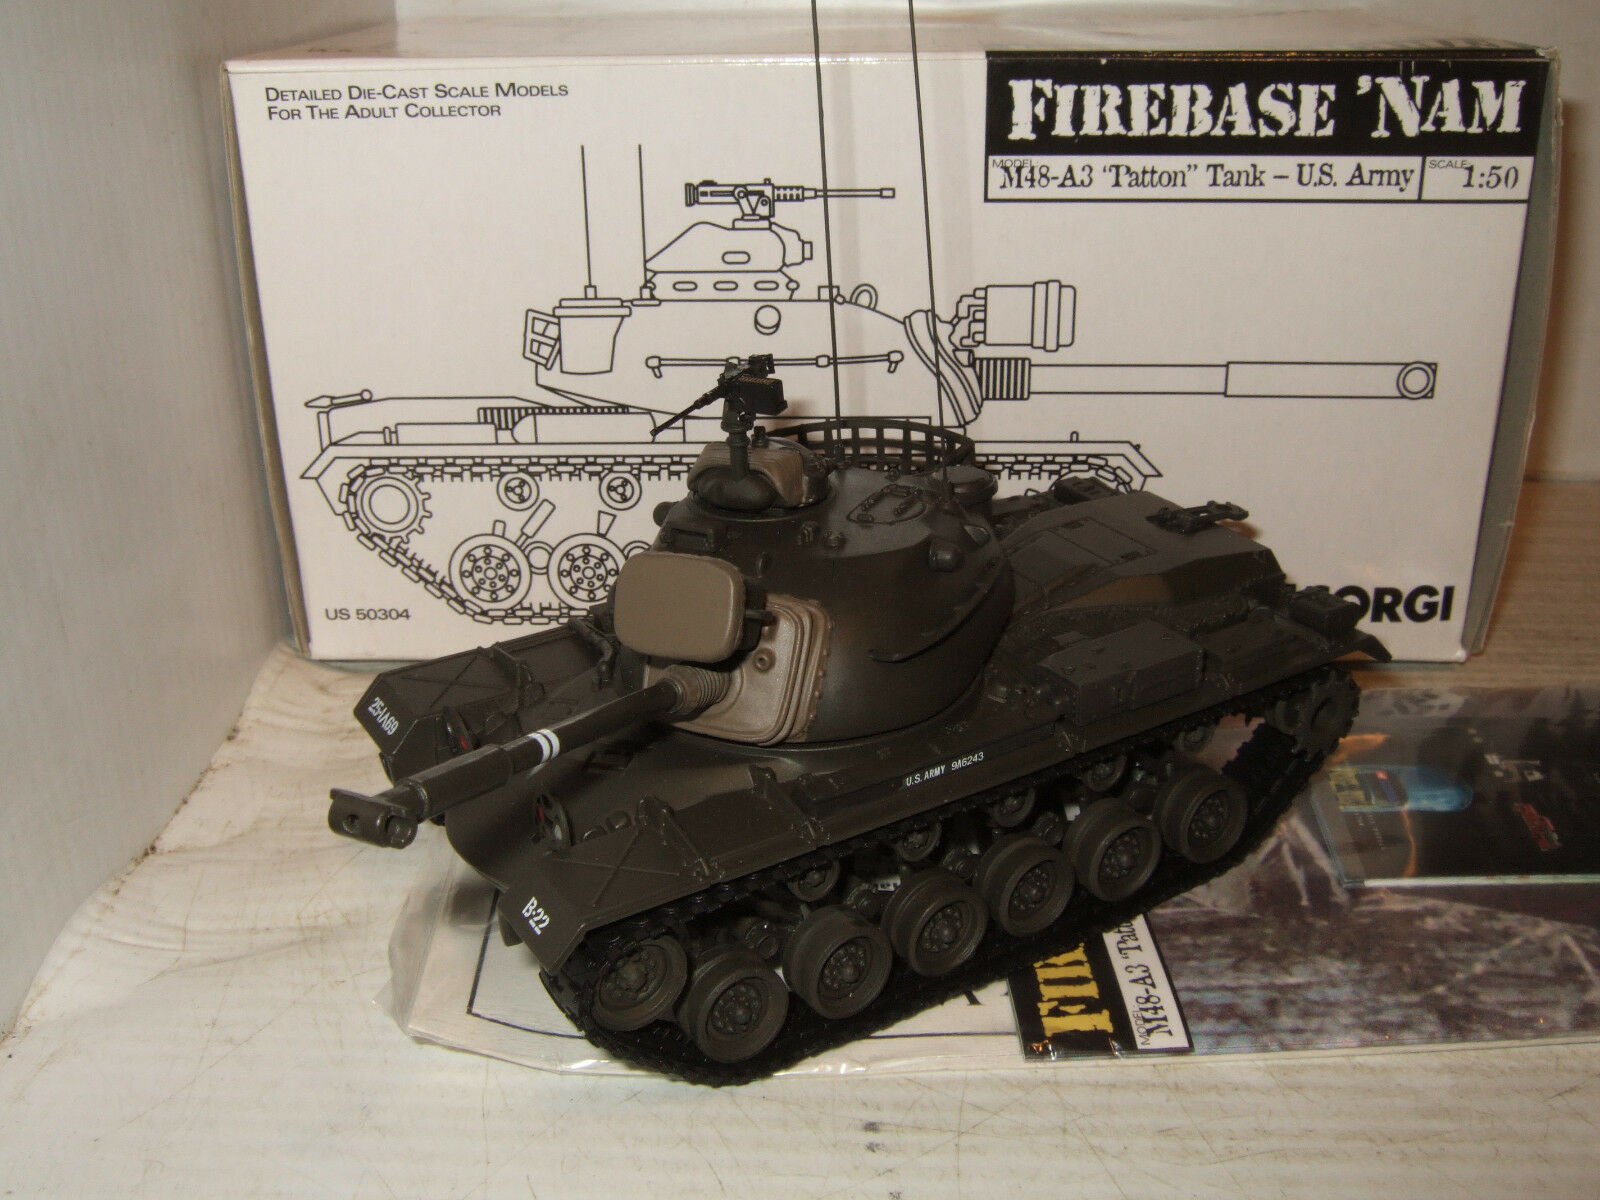 Corgi US50304 Firebase Nam, M48-A3 Patton Tank US Army in 1 50 Scale.